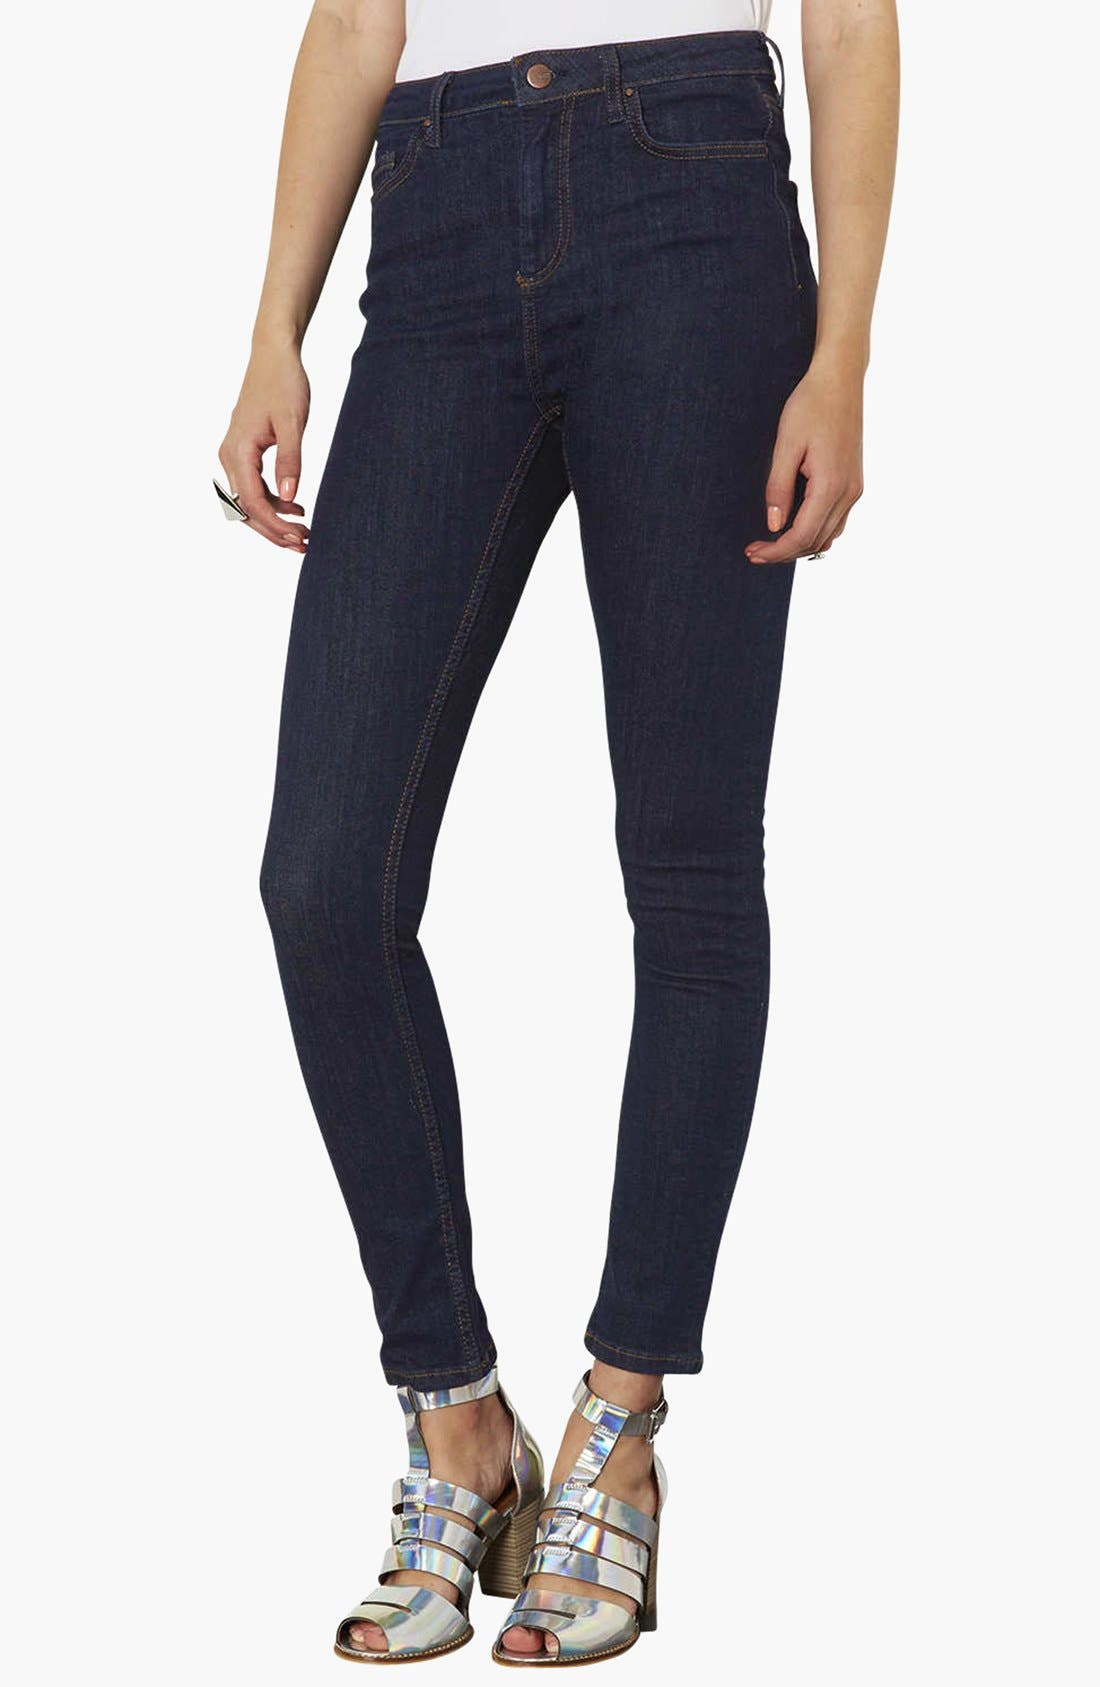 Alternate Image 1 Selected - Topshop Moto 'Jamie' High Rise Skinny Jeans (Blue) (Regular, Short & Long)